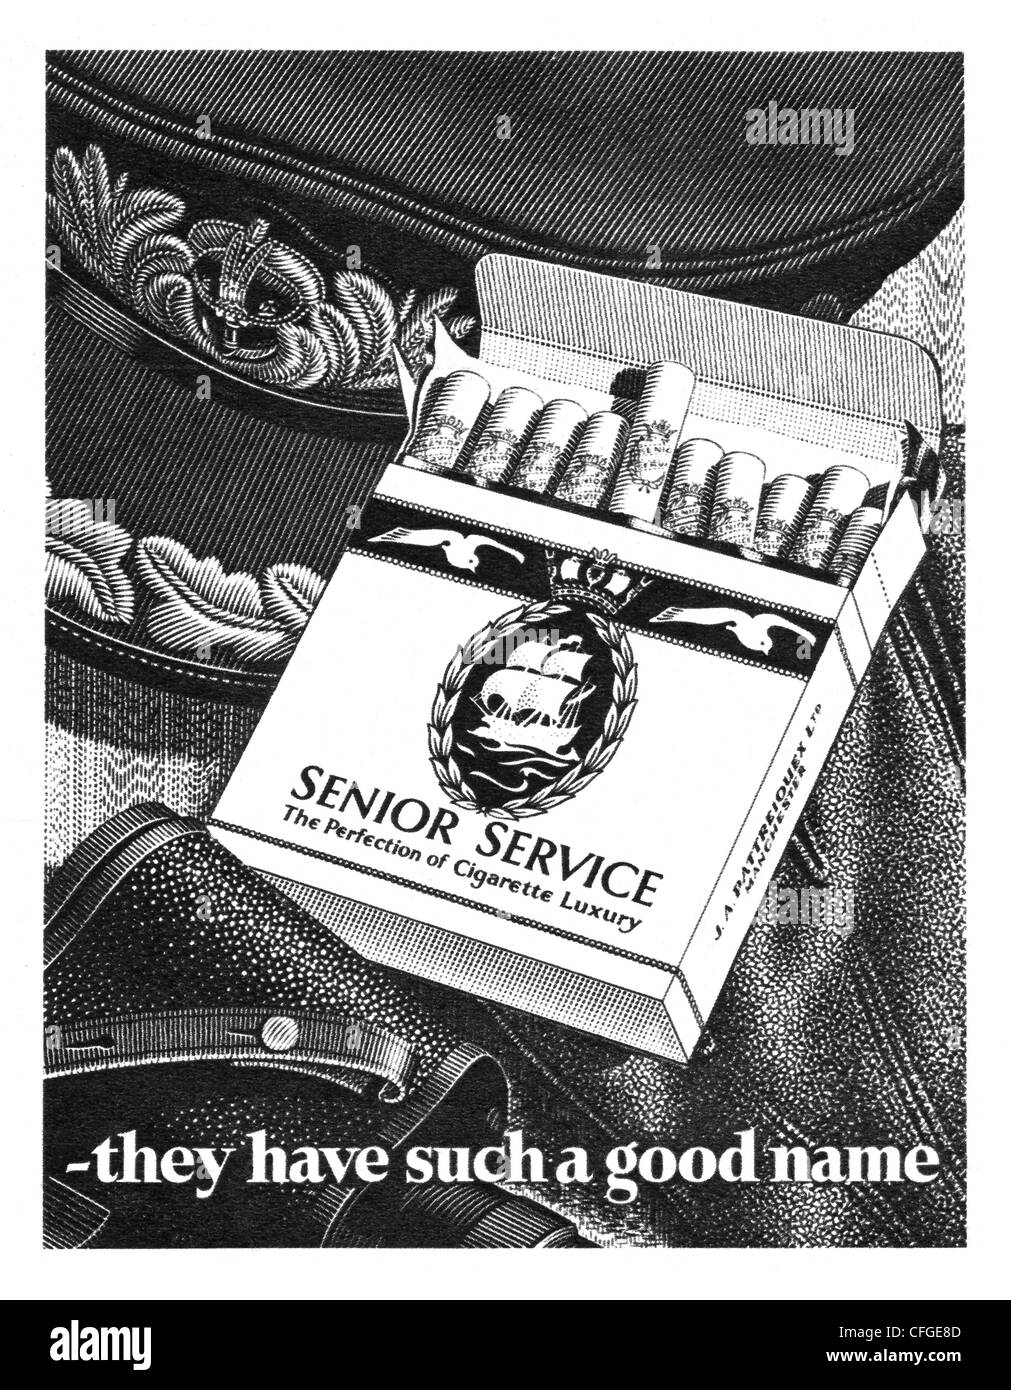 Senior Service cigarettes advert from 1952 - Stock Image